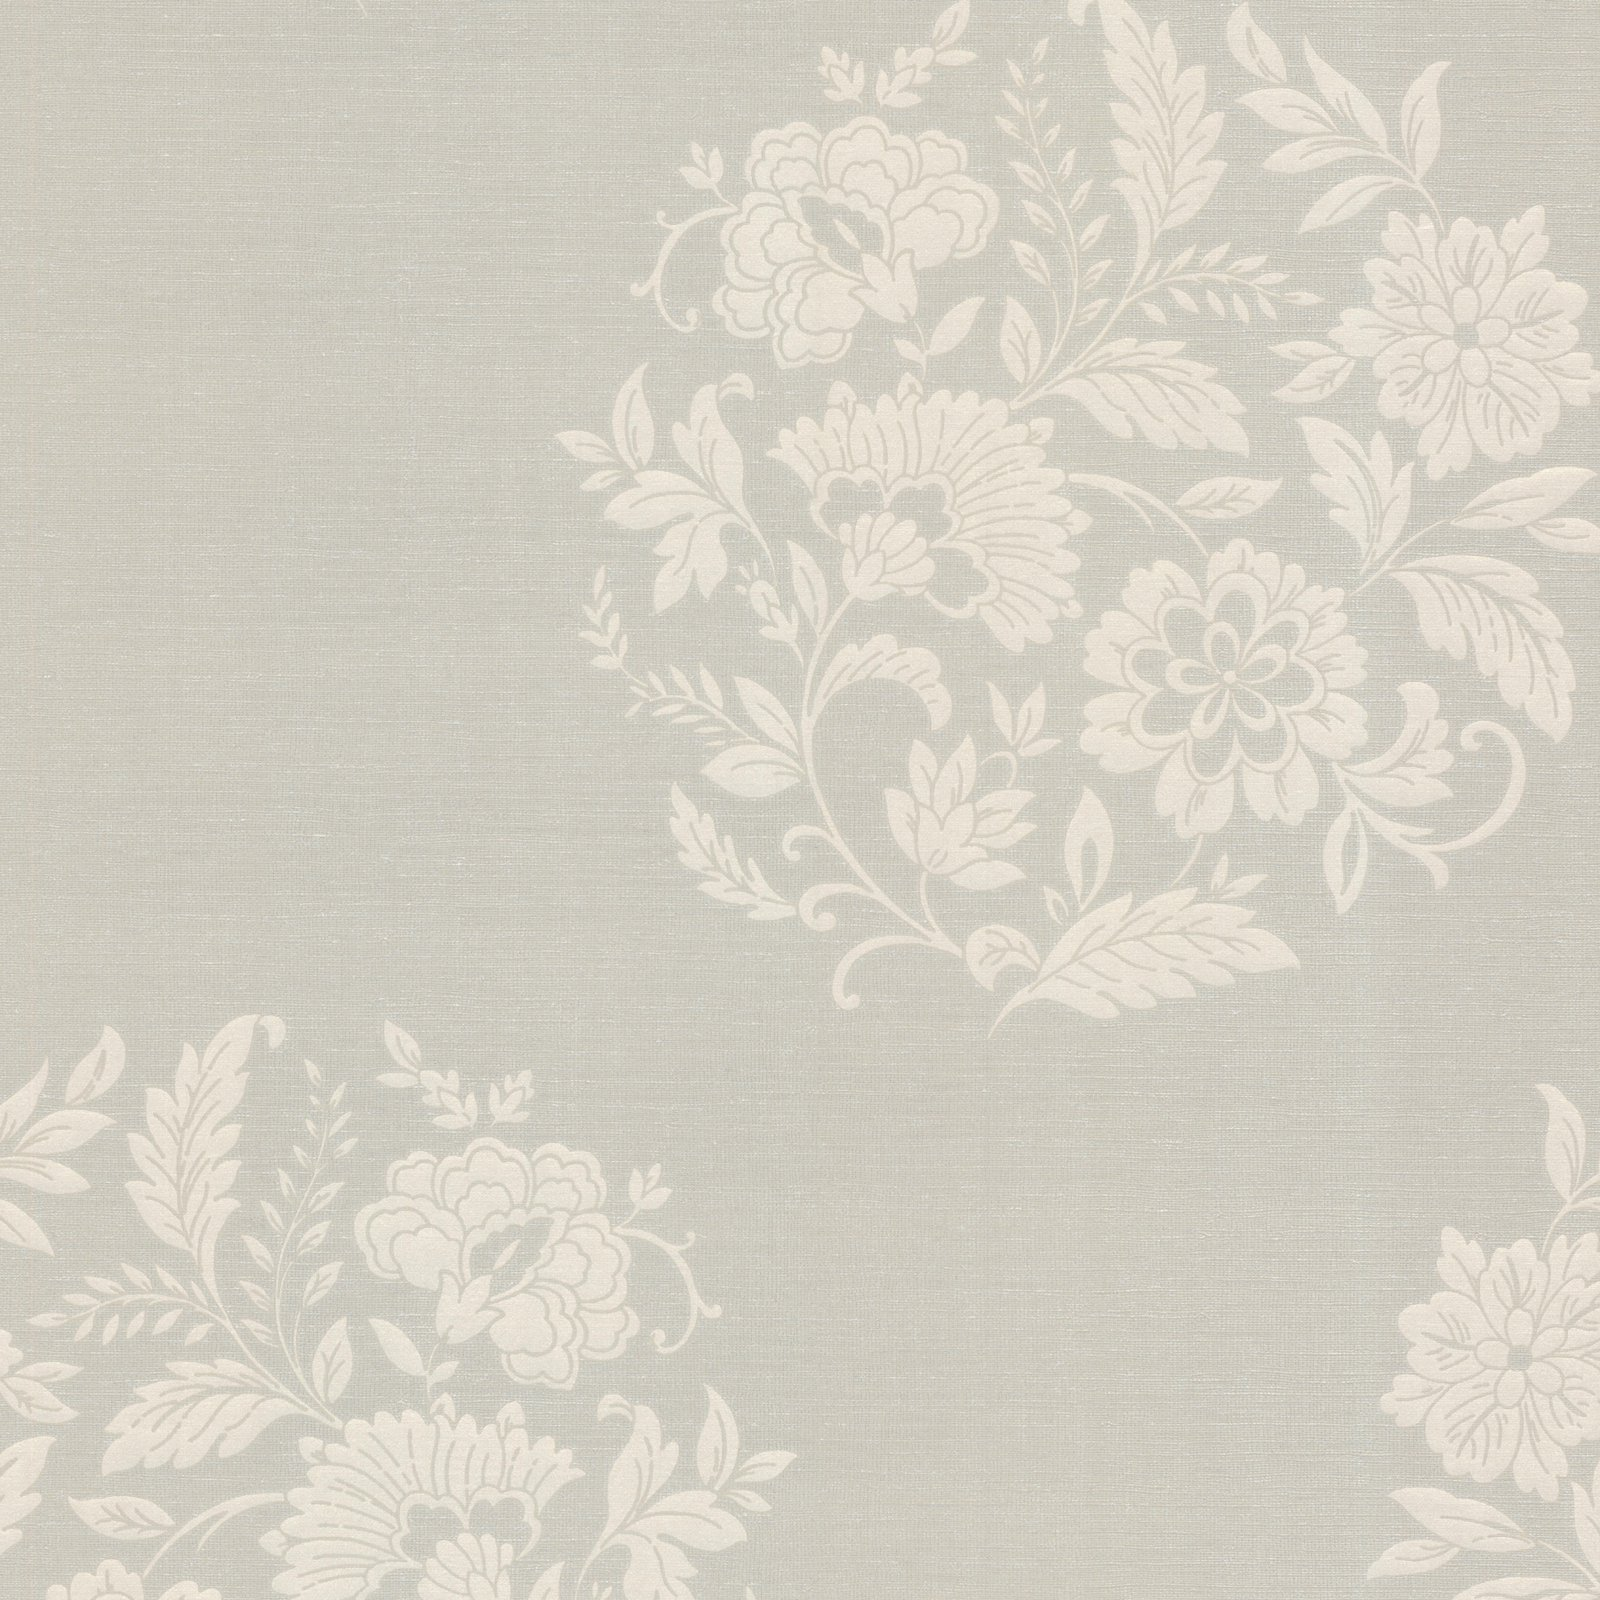 Floral Pattern Fabric Accent Wall: Decorline Velde Floral Motif Wallpaper Taupe In 2019